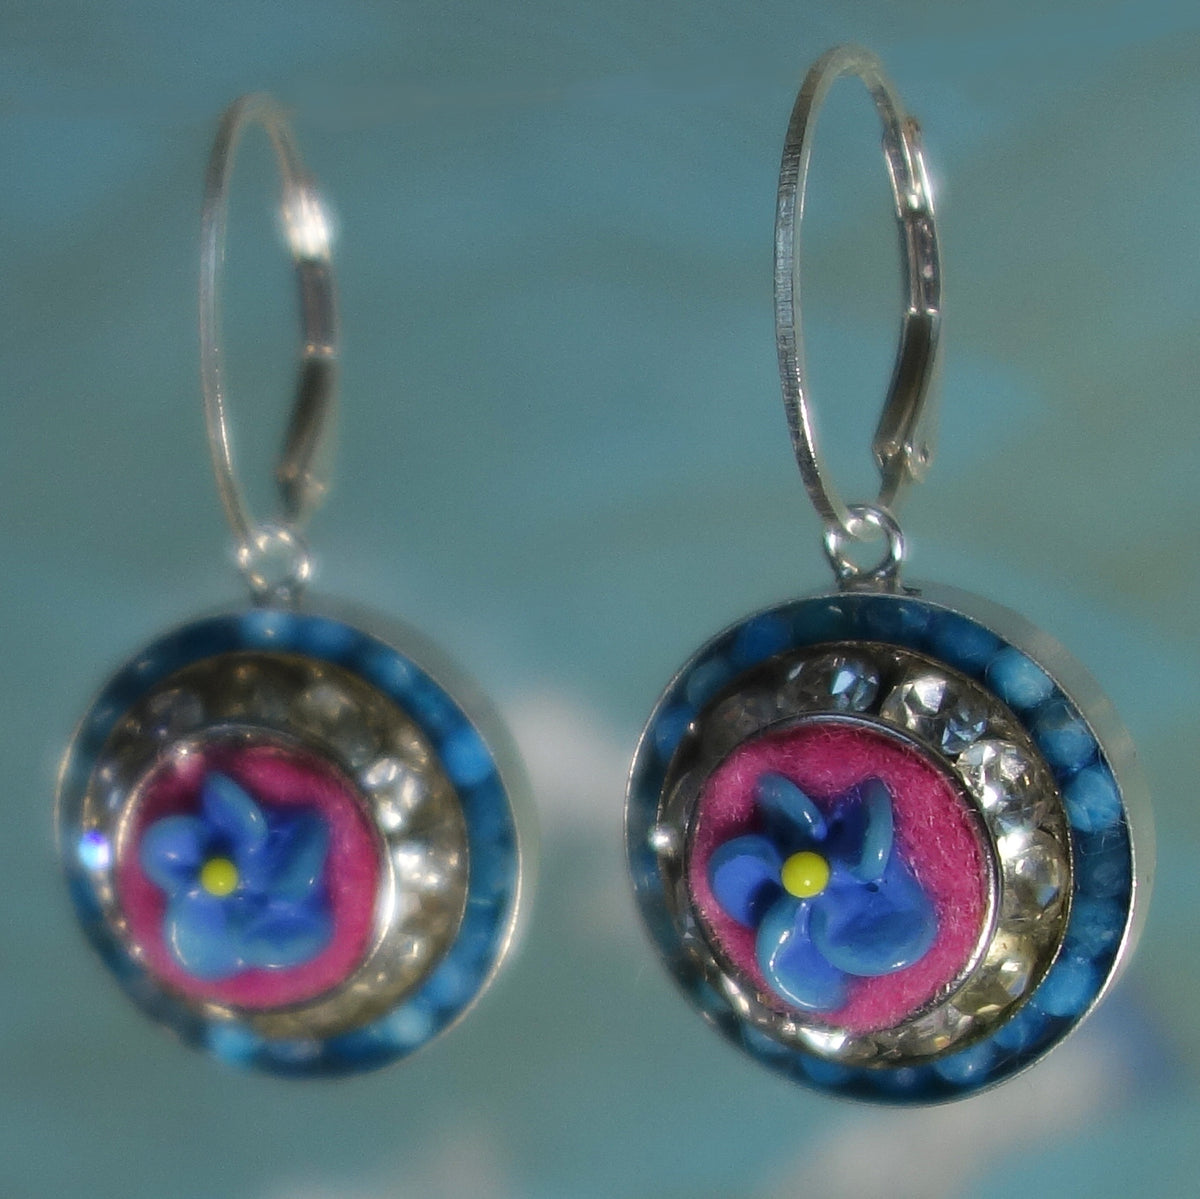 Whisper Me Sweet Nothings aquamarine/Czech glass earrings